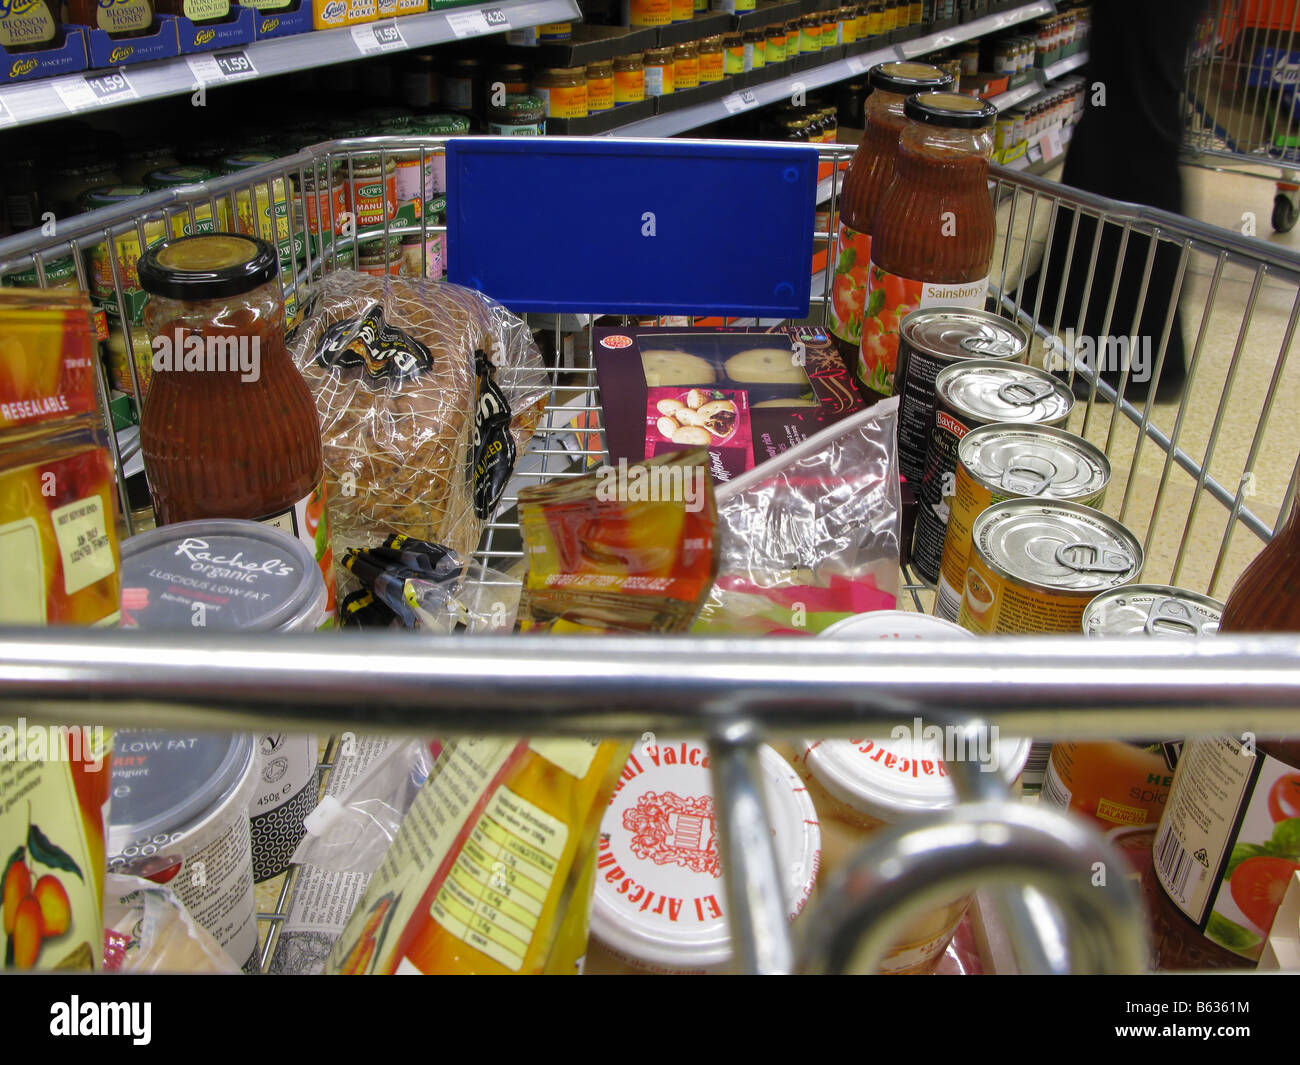 Shopping in trolley at supermarket - Stock Image